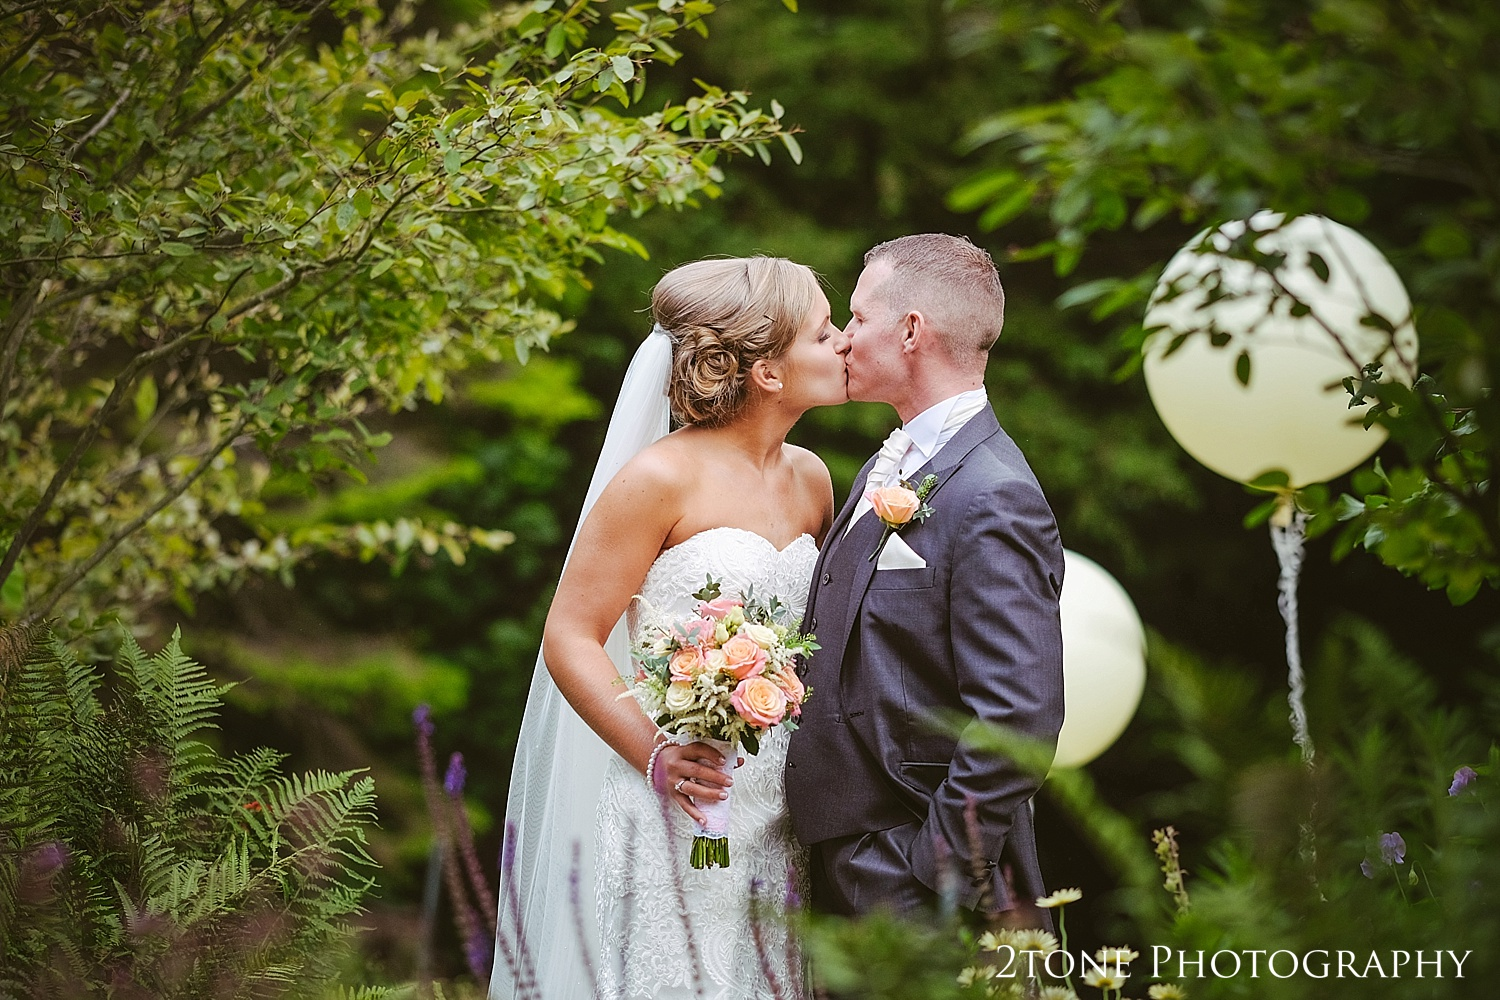 Wedding photographs of the bride and groom at Jesmond Dene House in Newcastle by 2tone Photography www.2tonephotography.co.uk